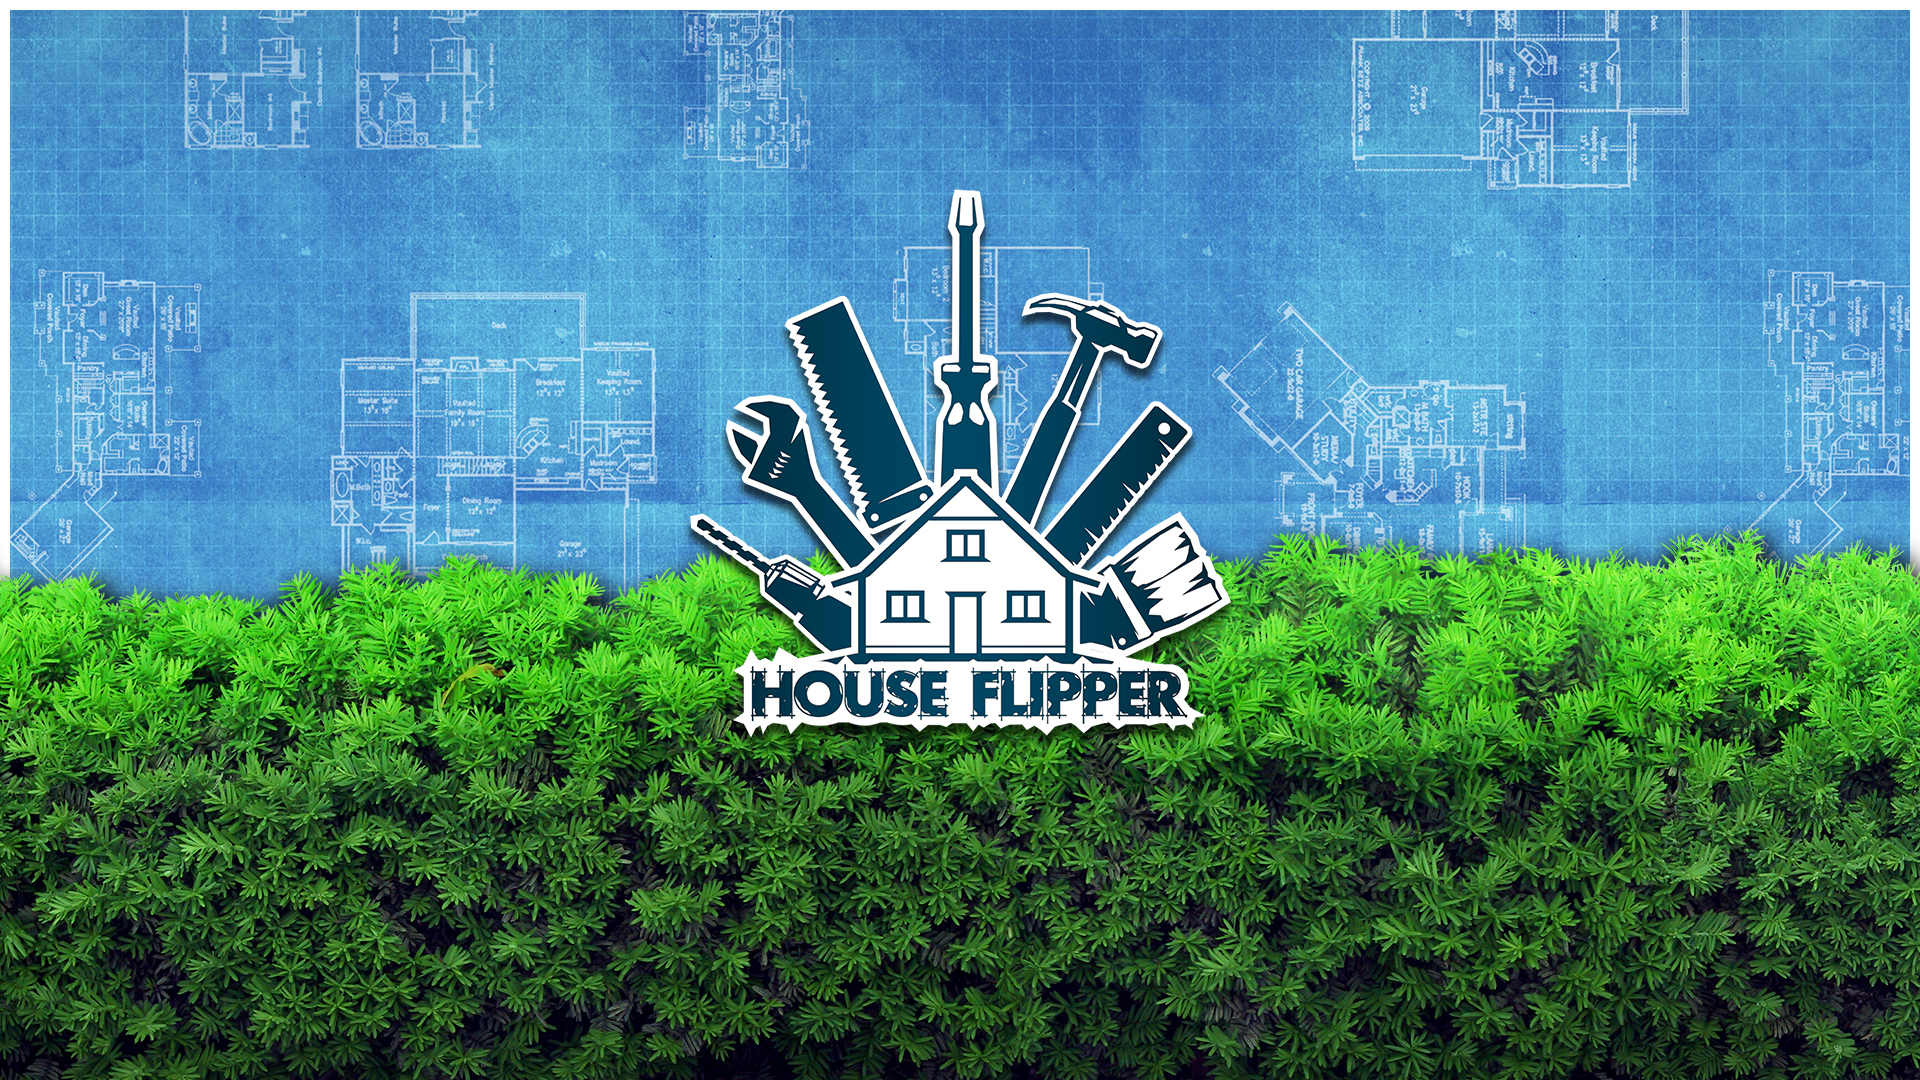 House Flipper logo